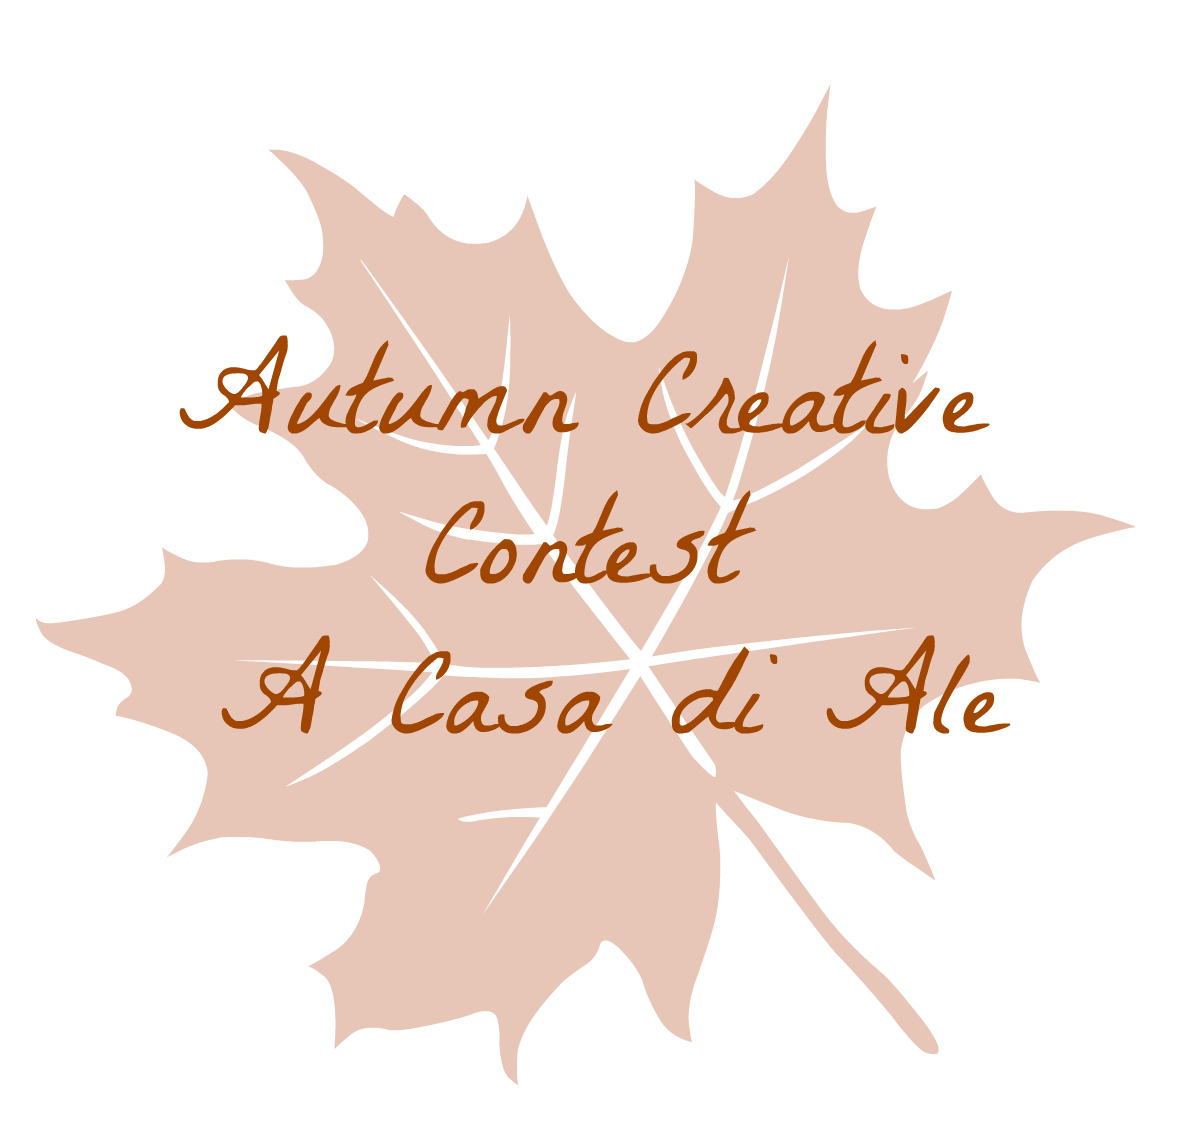 http://acasadi-ale.blogspot.it/